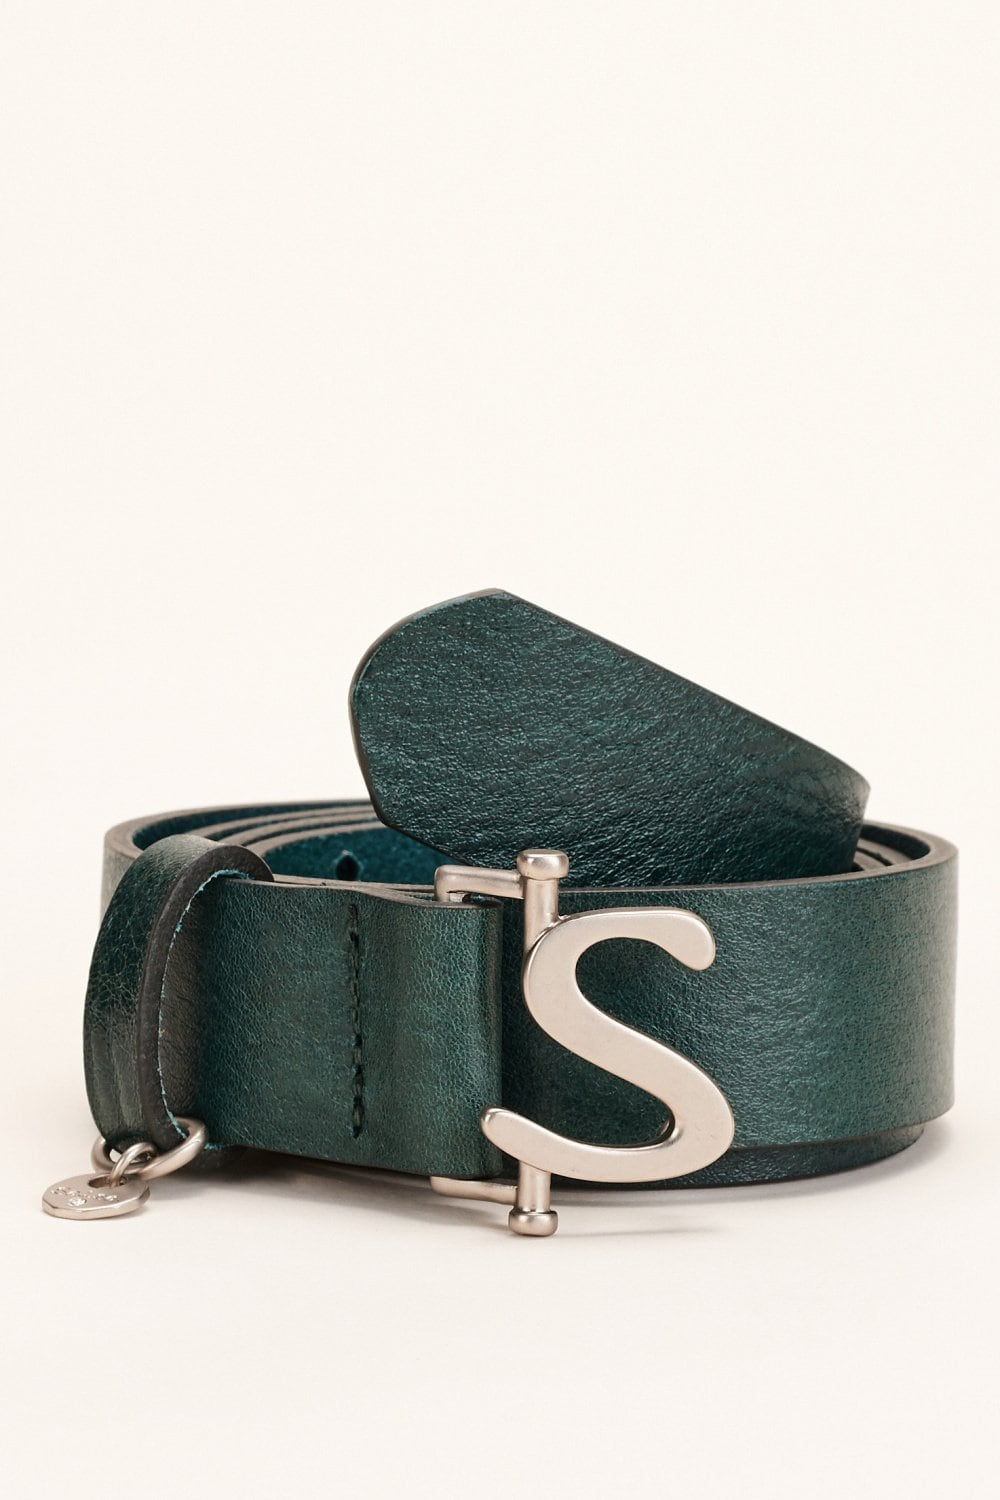 Leather belt with logo detail - Salsa